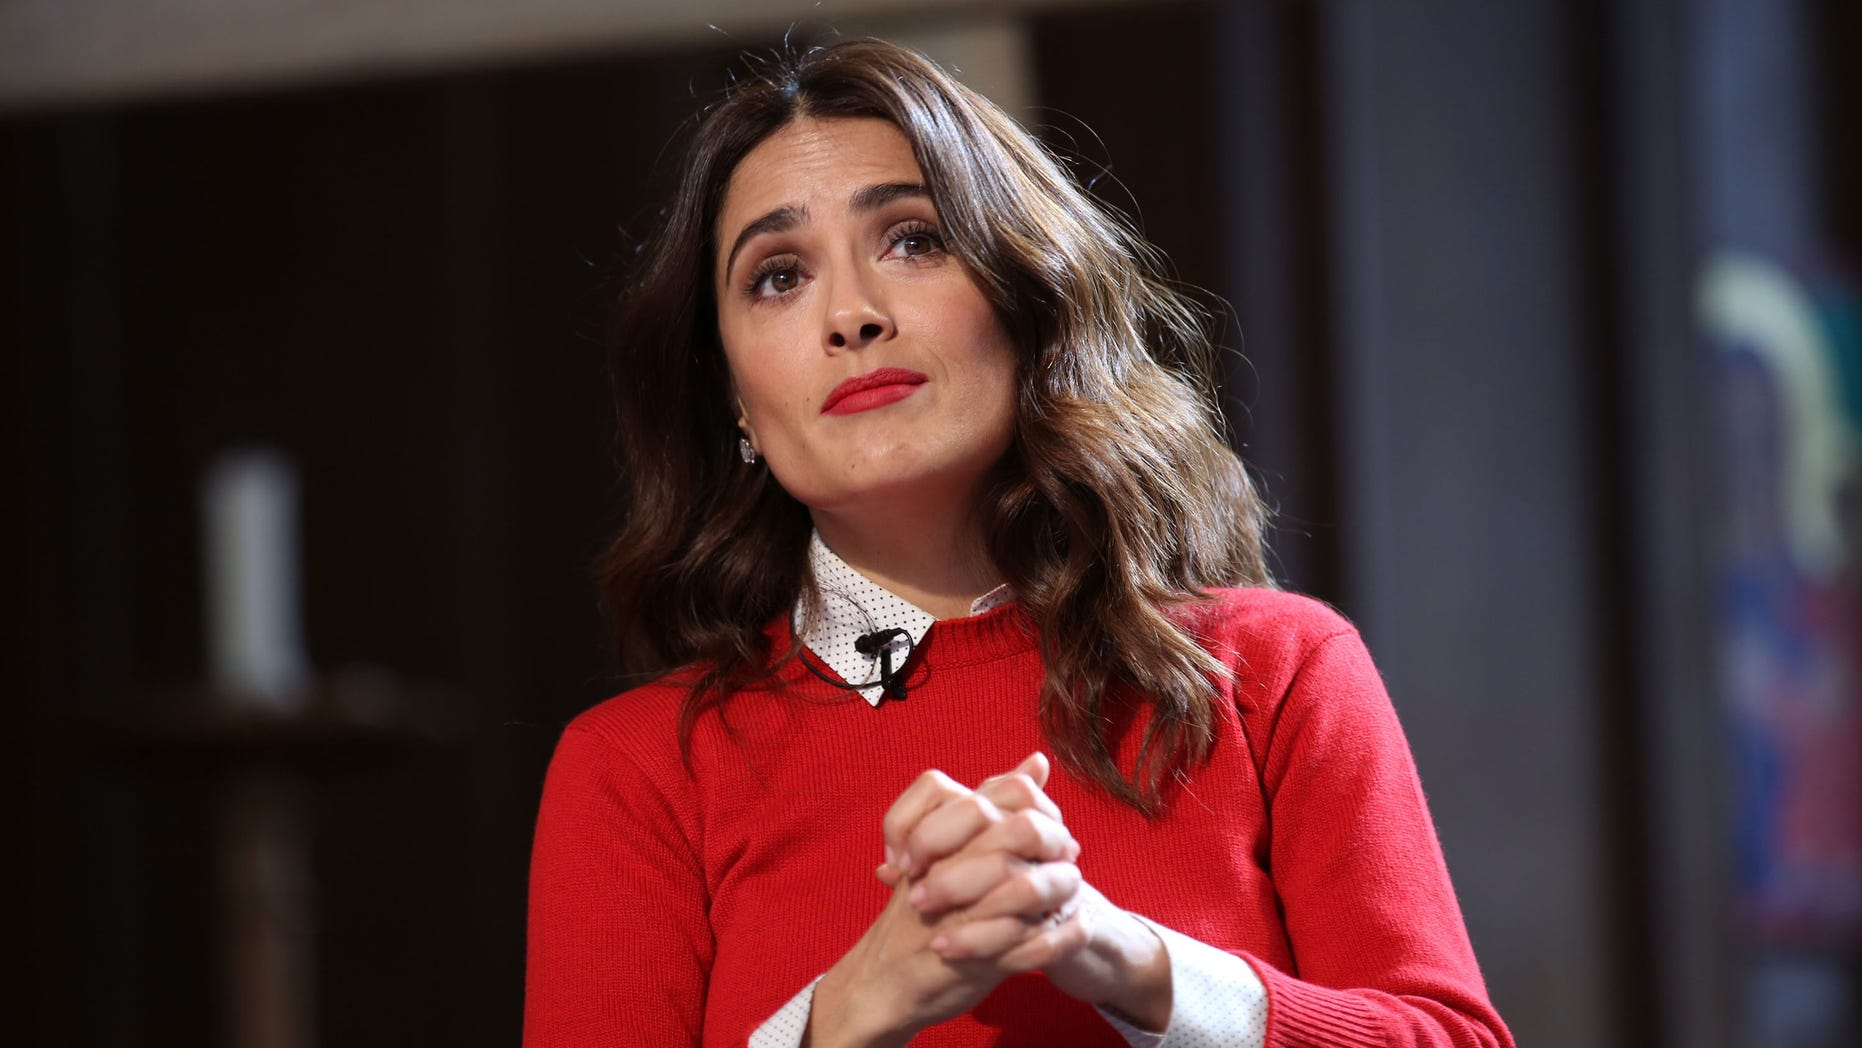 LONDON, ENGLAND - MARCH 23:  Salma Hayek speaks during The Facebook Creative Talks Part 1, as part of Advertising Week Europe, Piccadilly, on March 23, 2015 in London, England.  (Photo by Tim Whitby/Getty Images for Advertising Week)